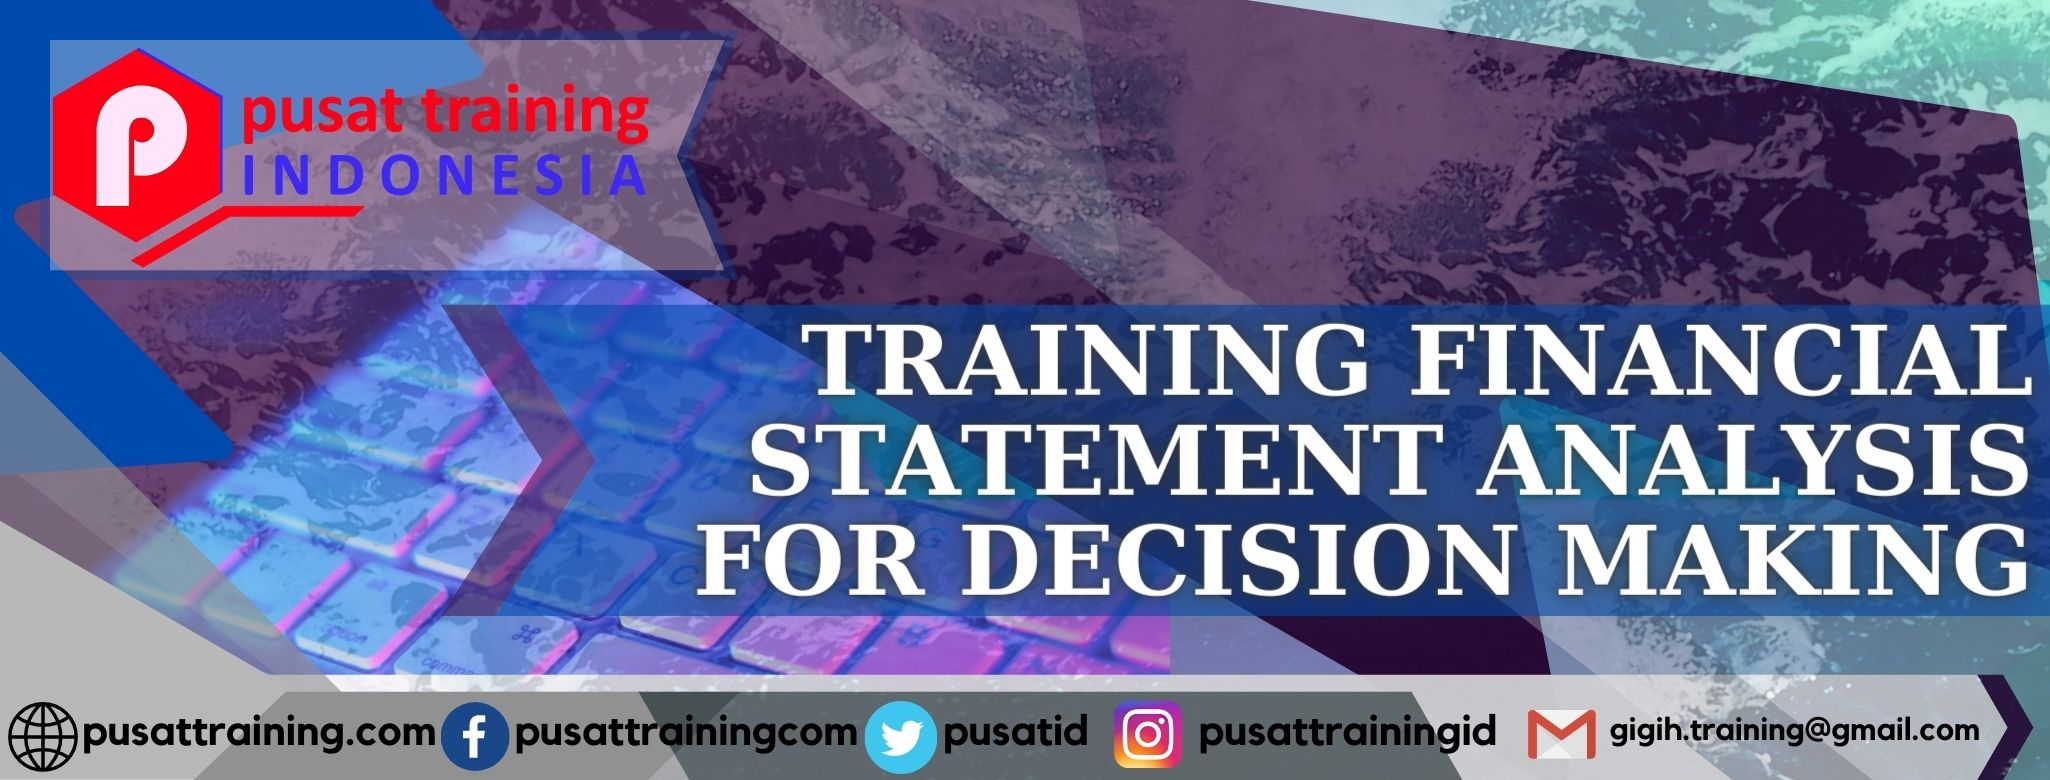 training-financial-statement-analysis-for-decision-making